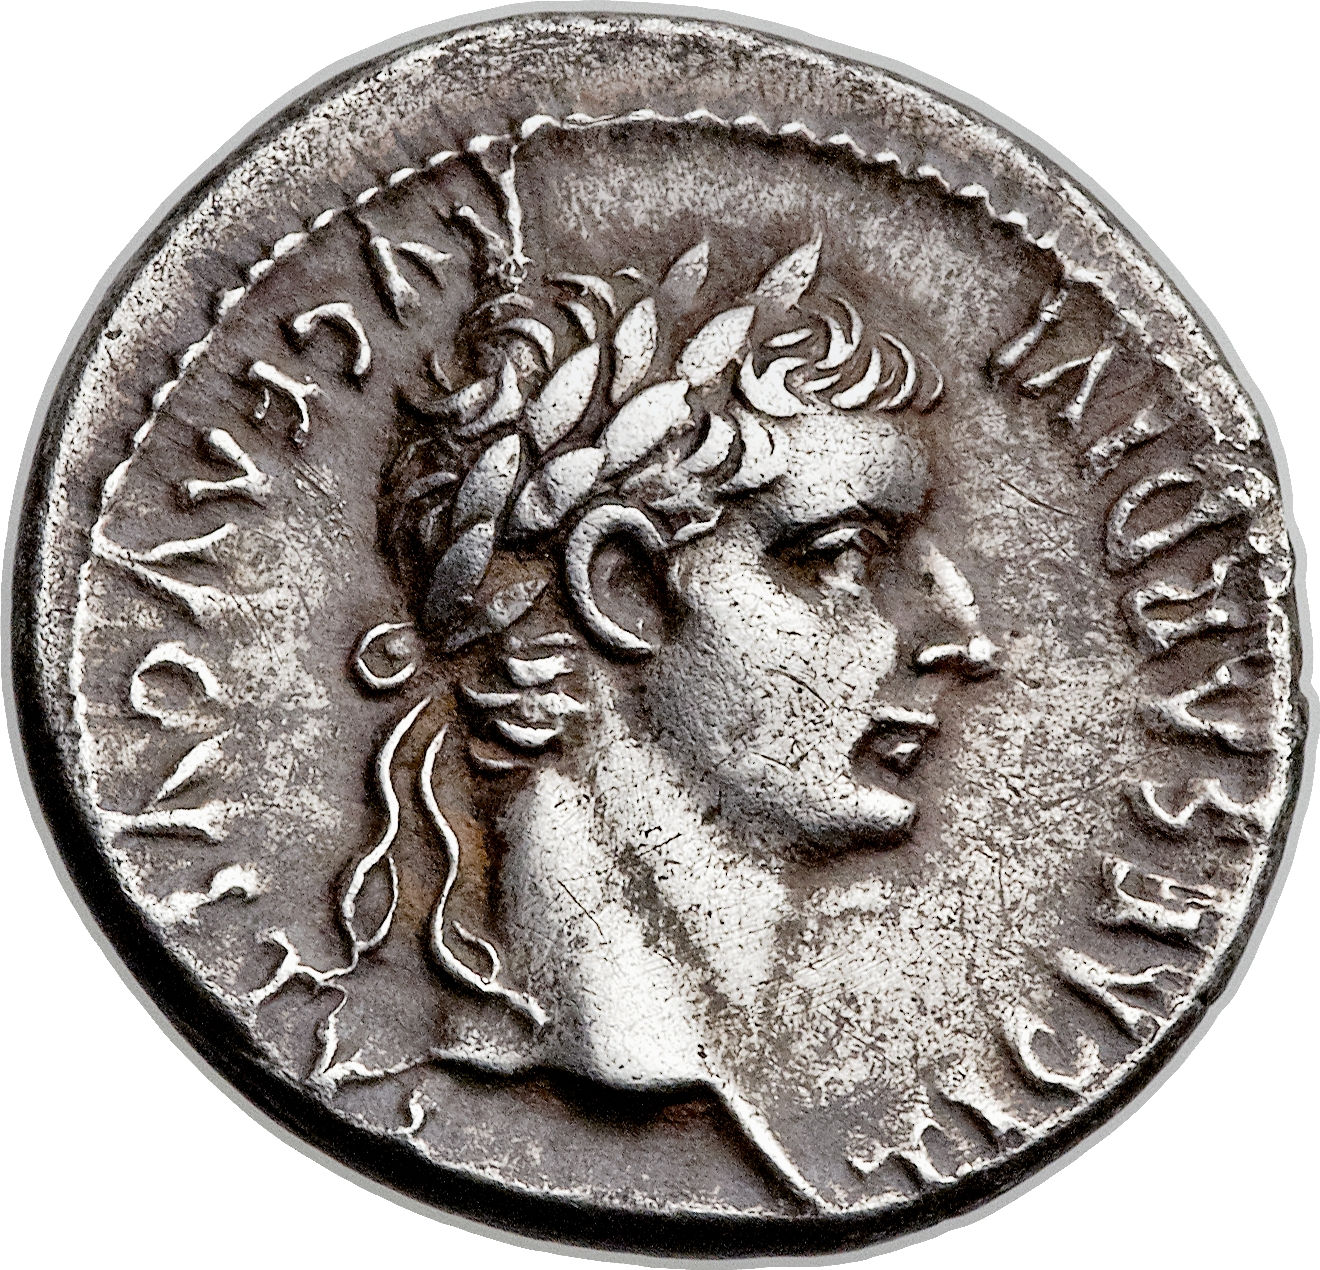 This Silver Denarius Was The Daily Wage For Common Roman Solrs And Unskilled Labor More Than 2000 Years Ago Based Upon Cur Price Of